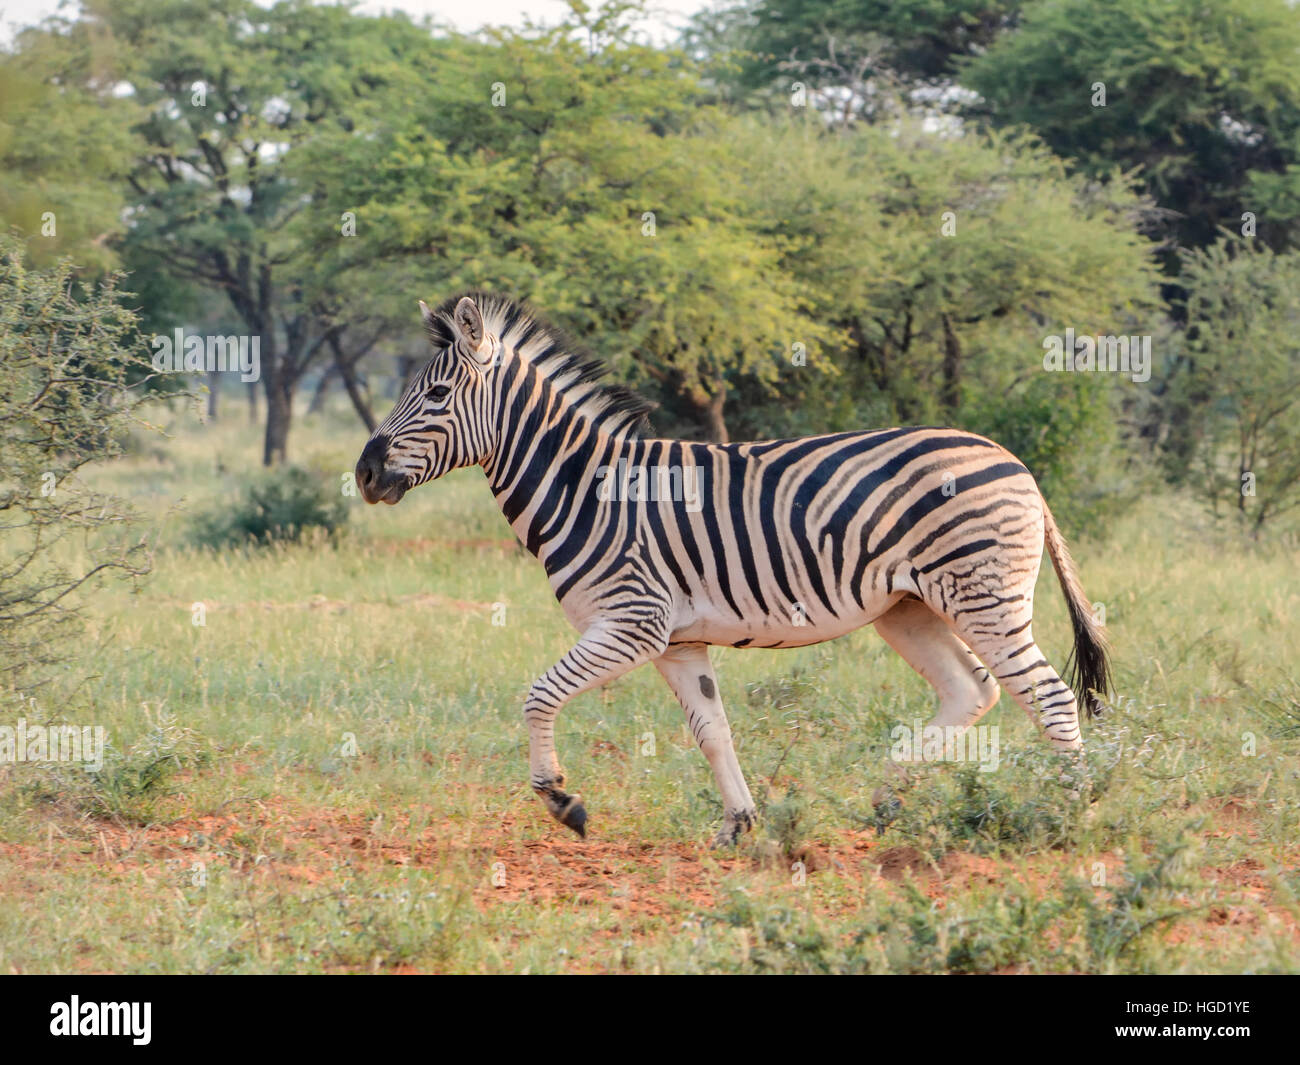 An adult Burchell's Zebra trotting through the Southern African savannah - Stock Image